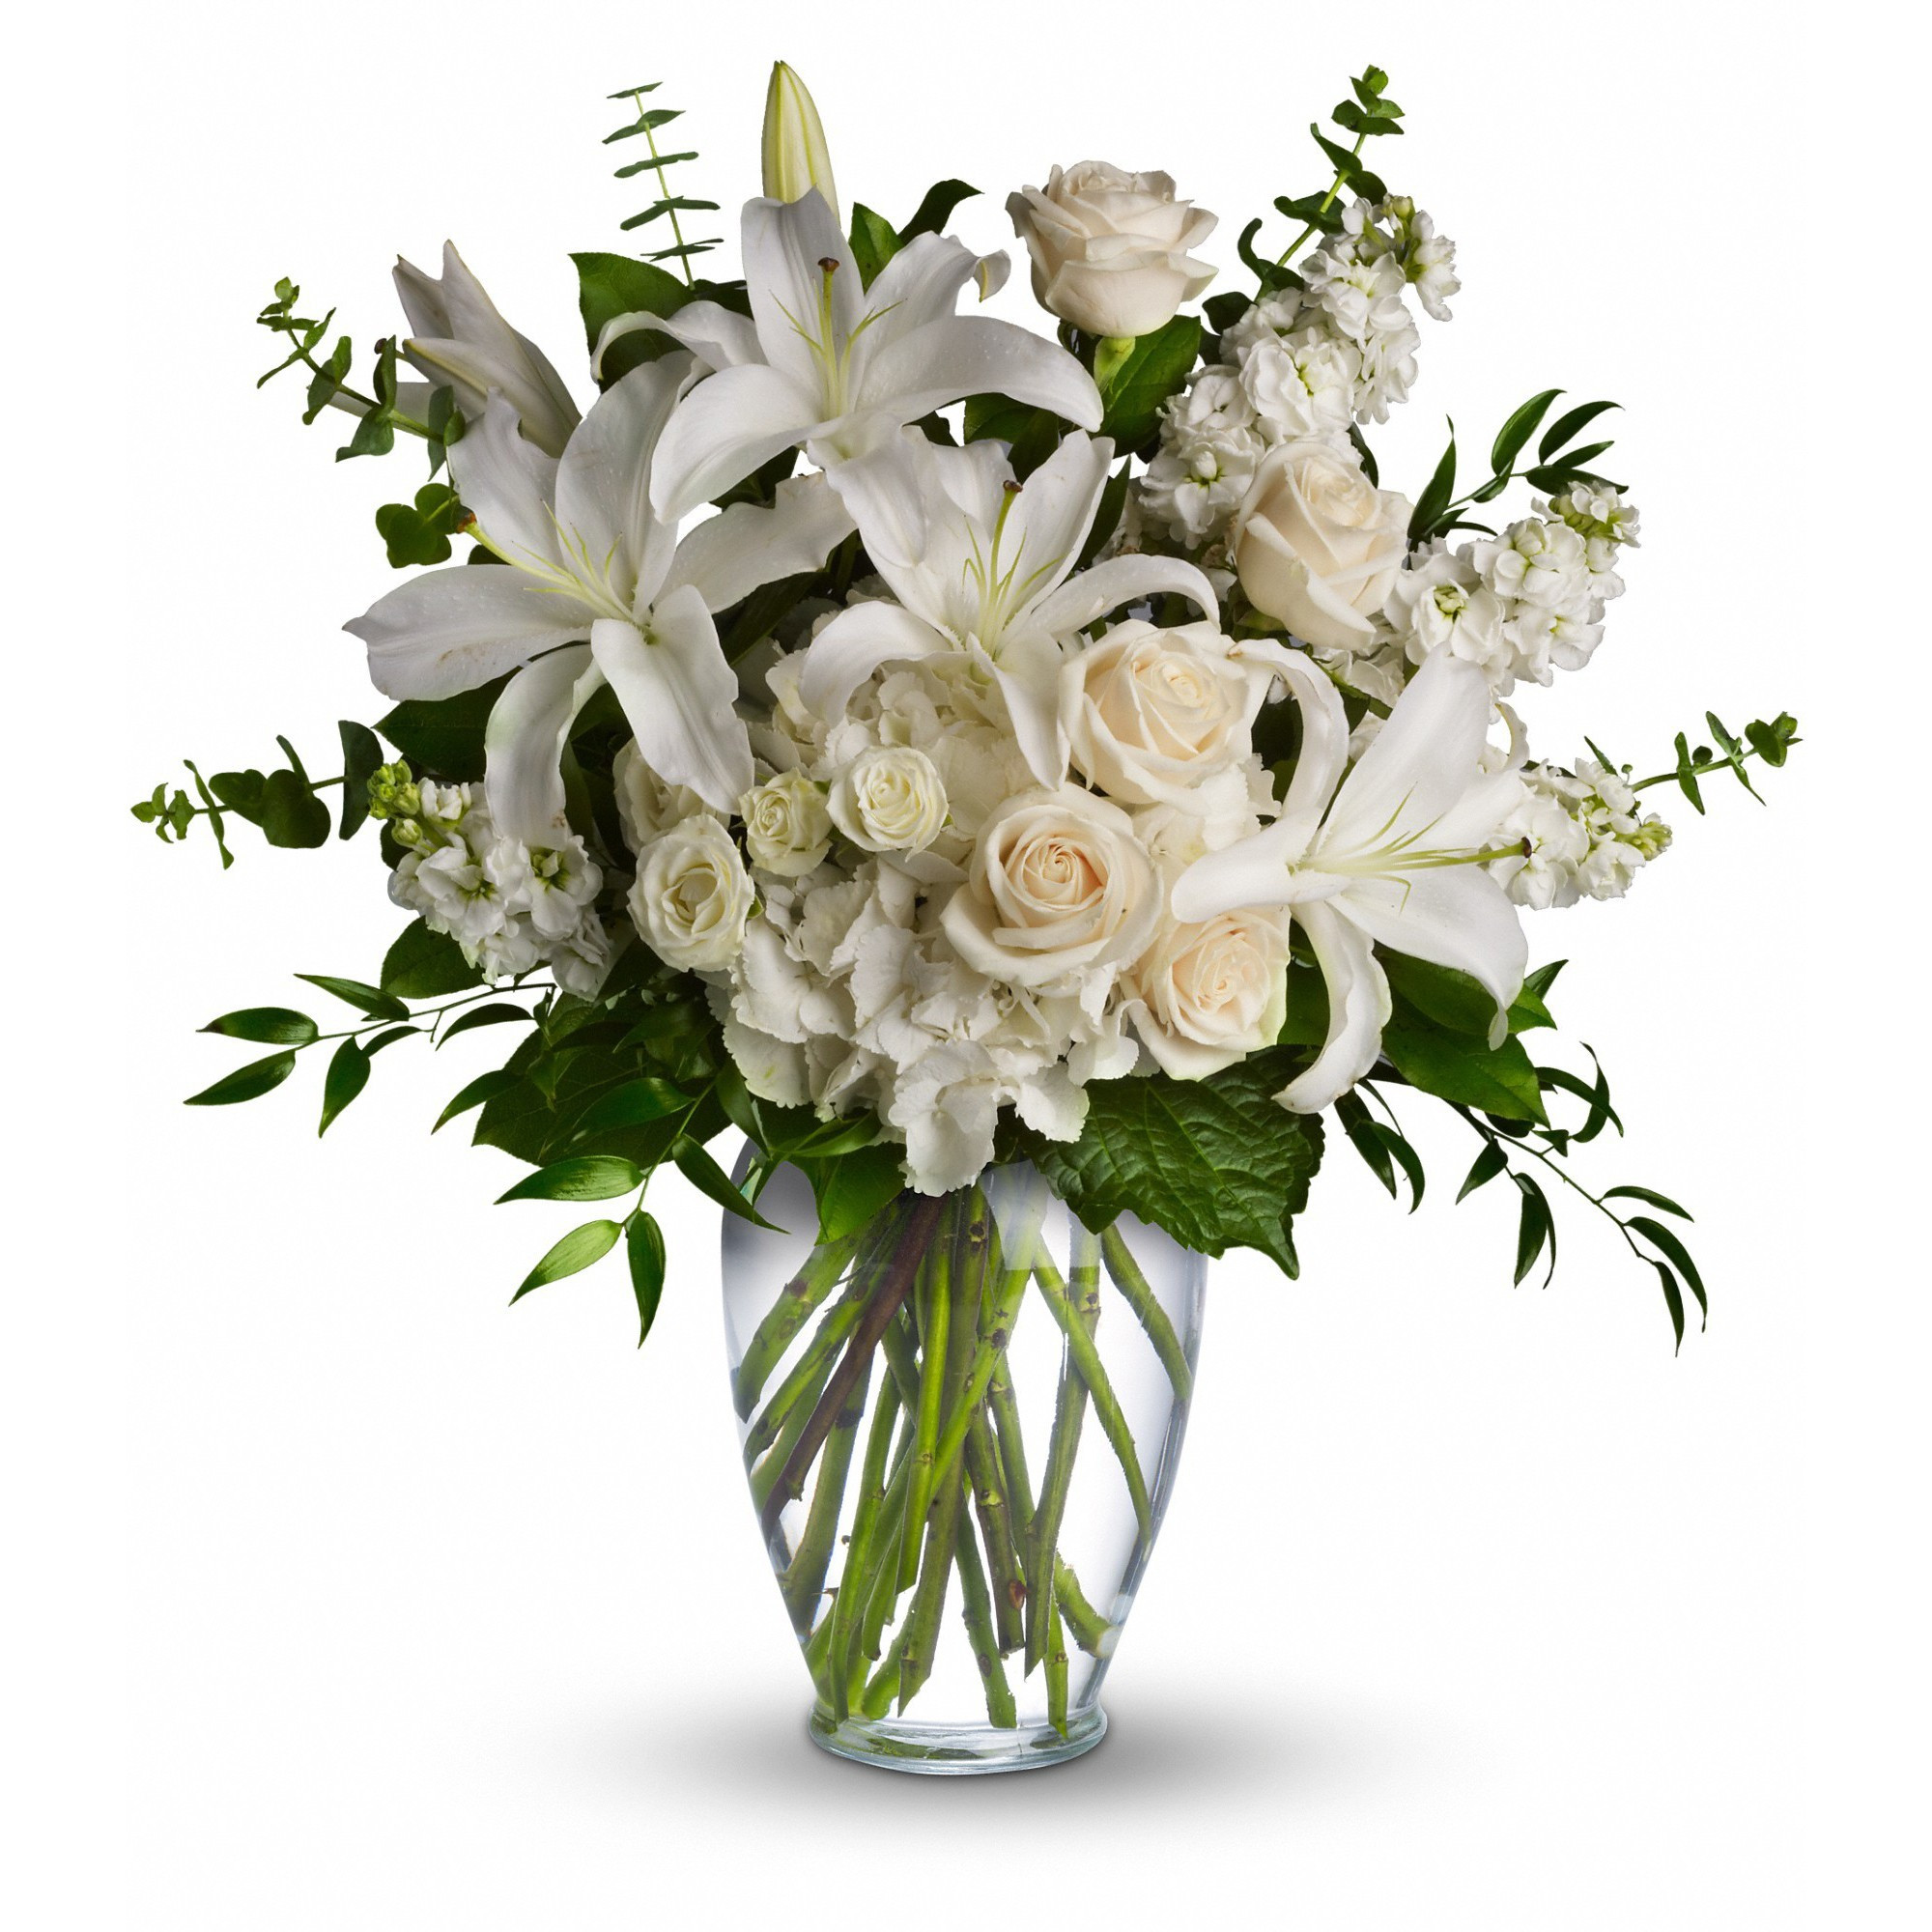 teleflora gift vase of t208 1a dreams from the heart bouquet by teleflora in frederick md within t208 1a dreams from the heart bouquet by teleflora